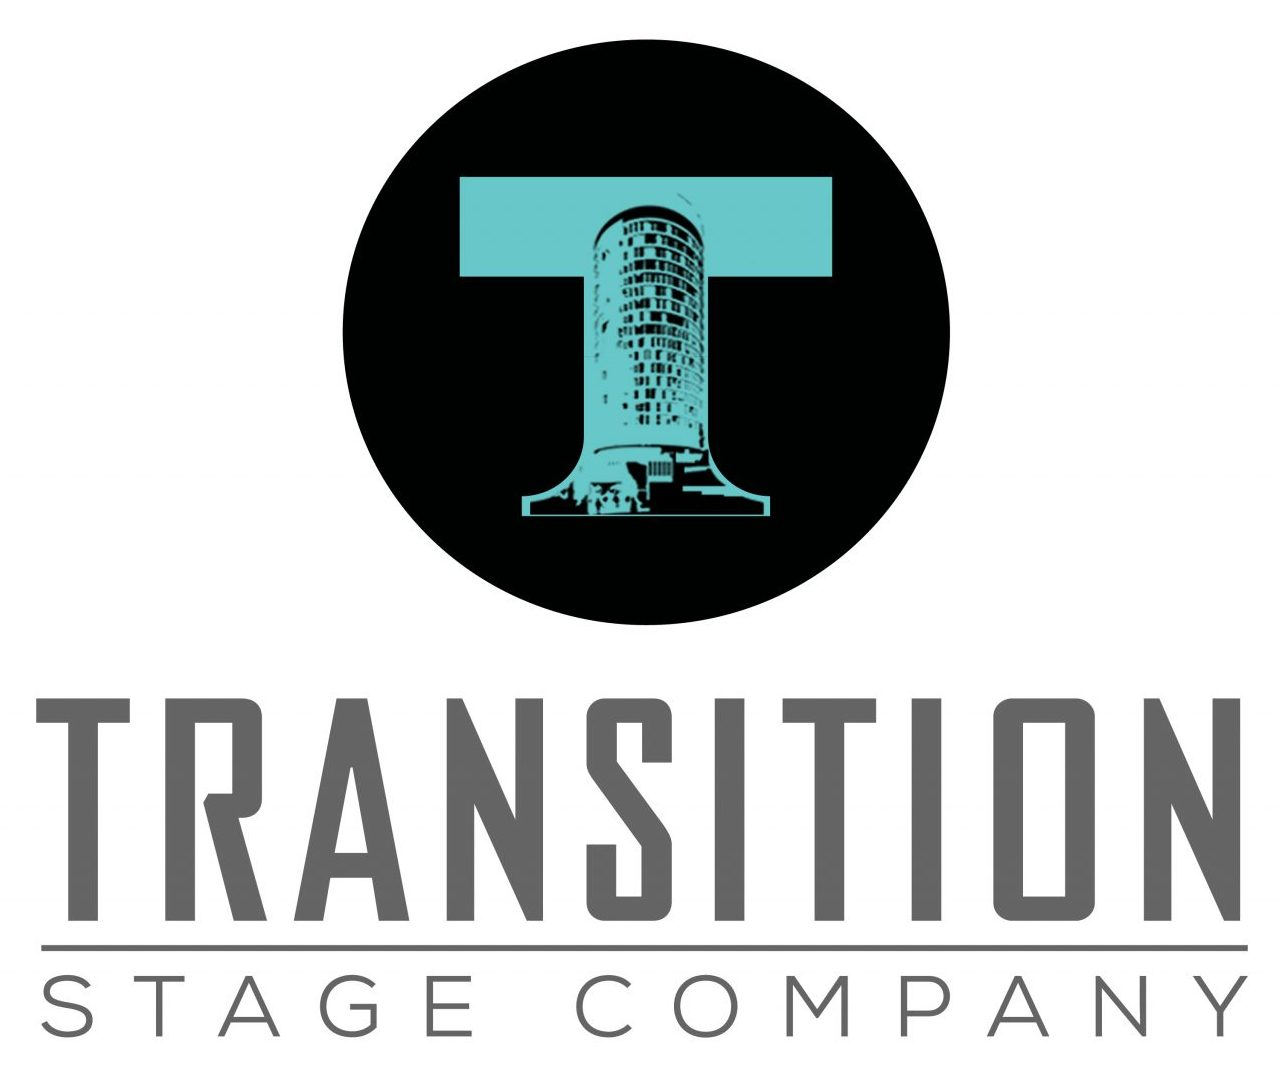 Transition Stage Company